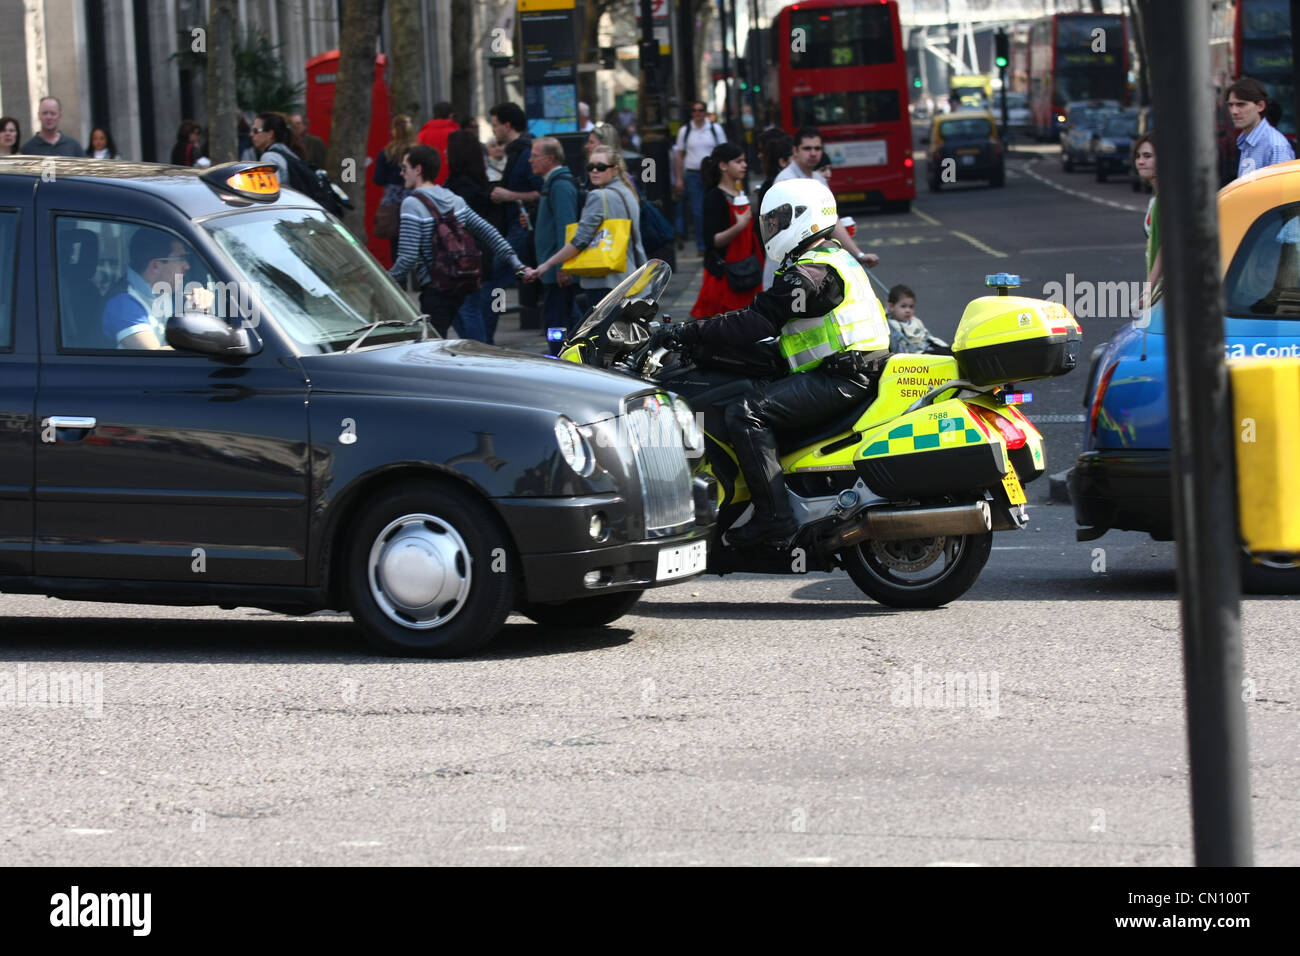 a London ambulance motorcyclist driving the wrong way around Trafalgar Square to get to an emergency - Stock Image